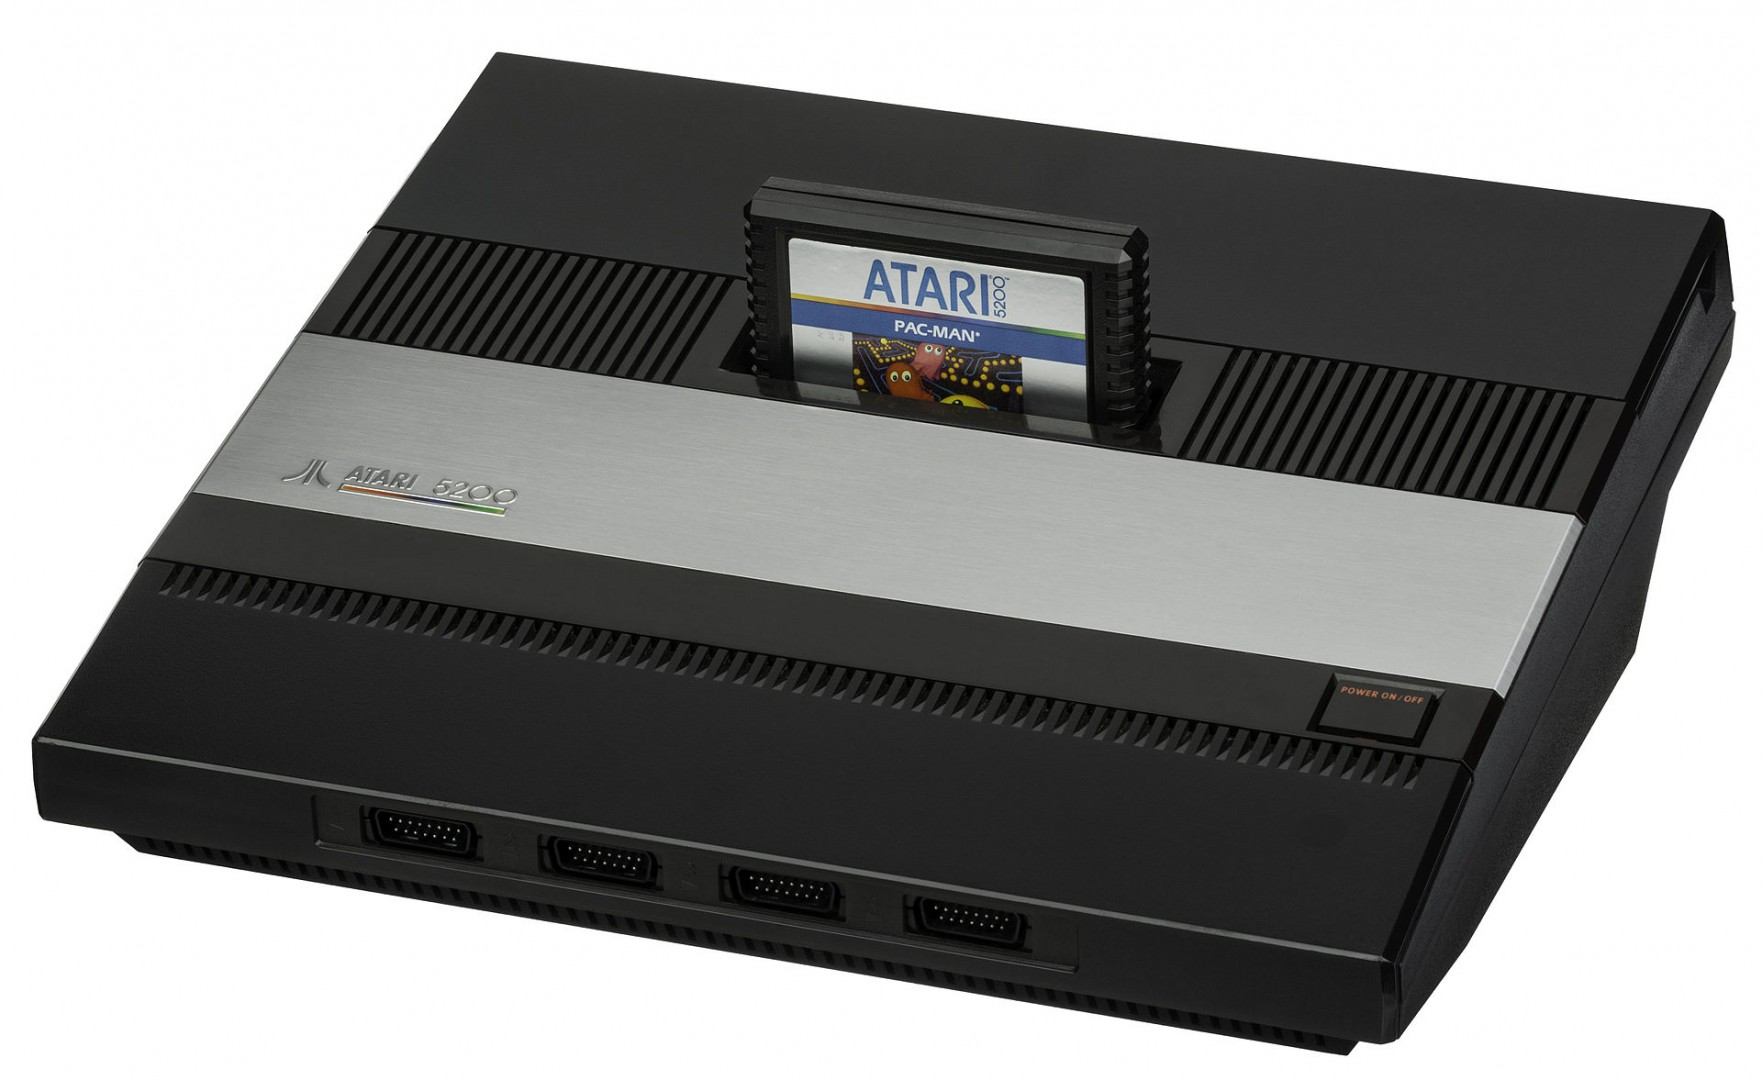 Atari 5200 with Pac-Man cartridge. Public domain image by Evan Amos.